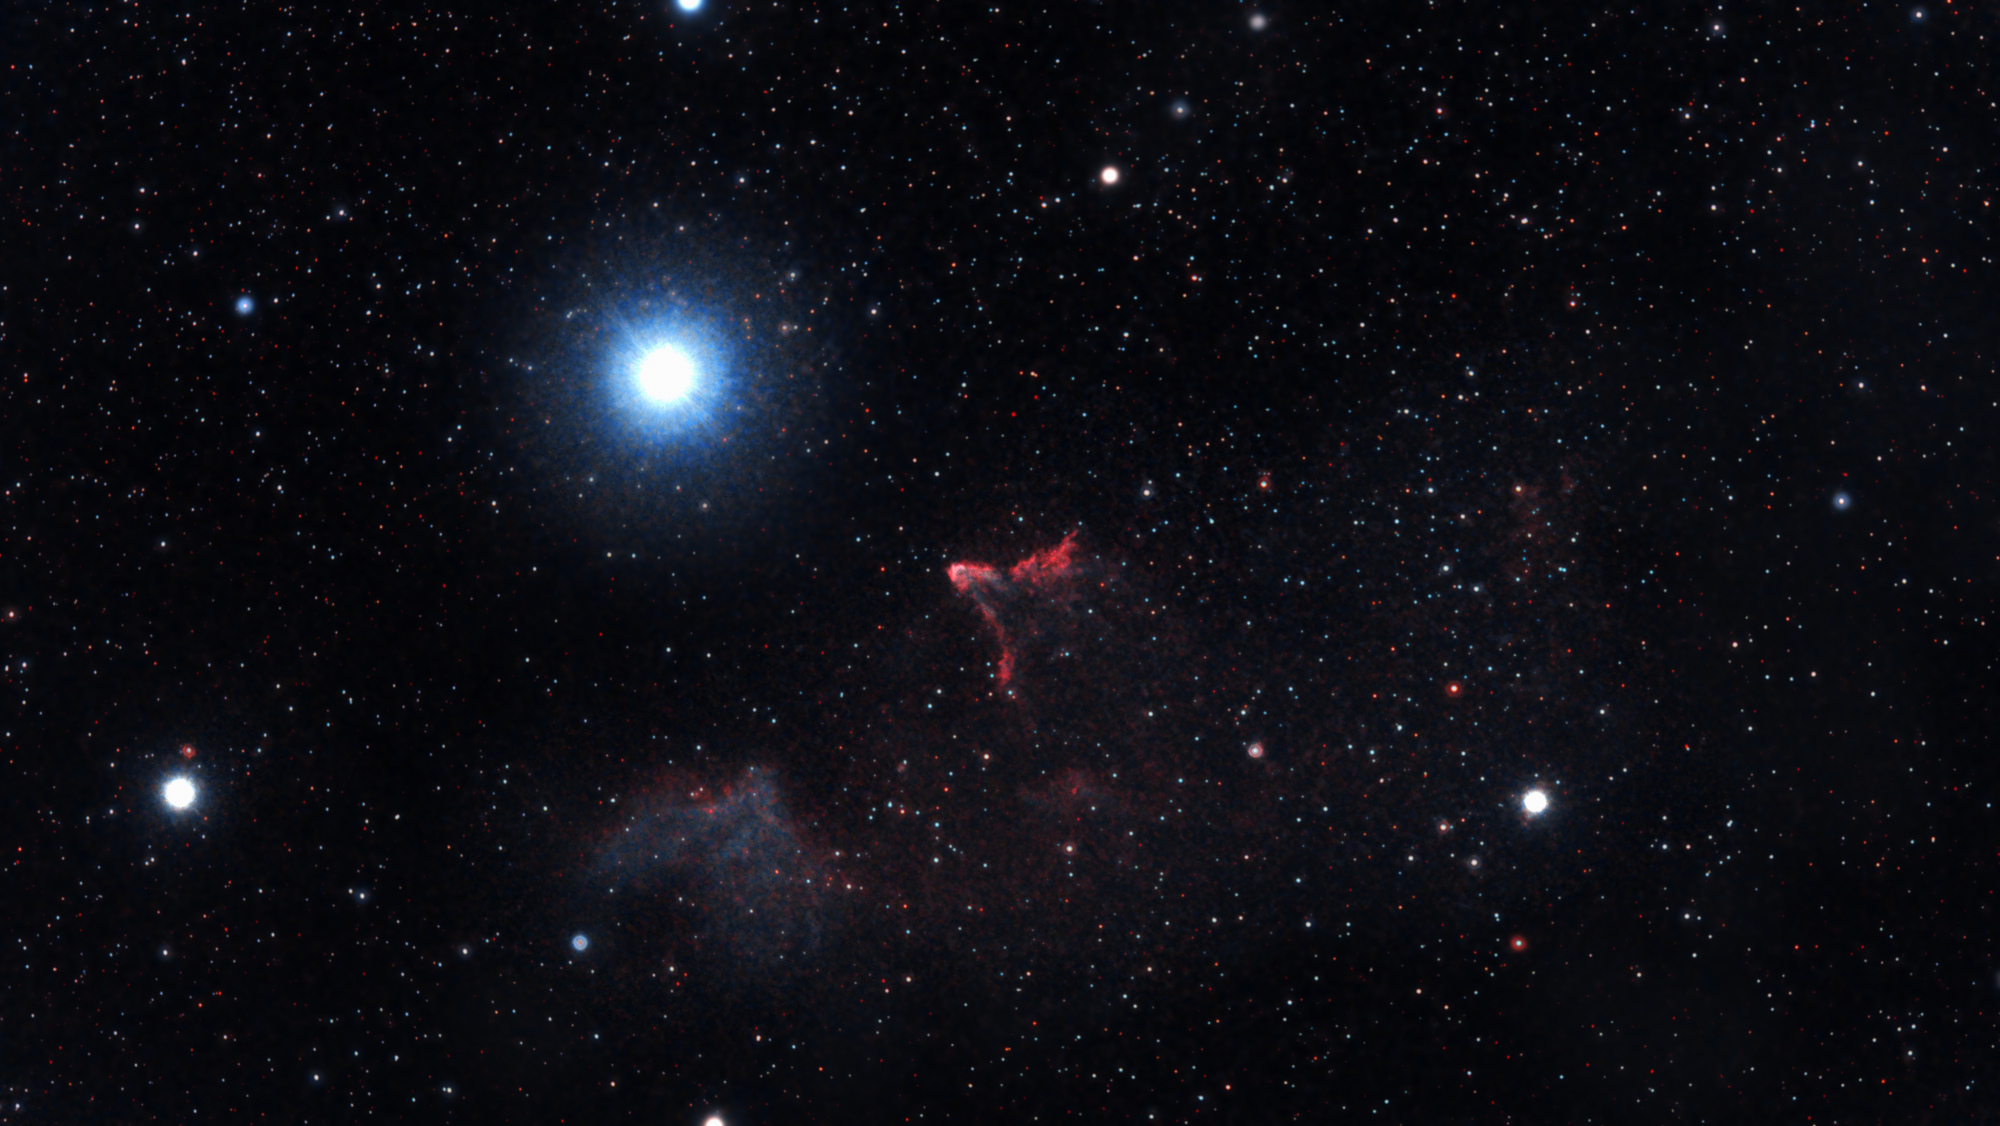 r_pp_IC63 Nebuleuse fantome 67x180s 32bits_stacked_processed-TIF V2.2.jpg